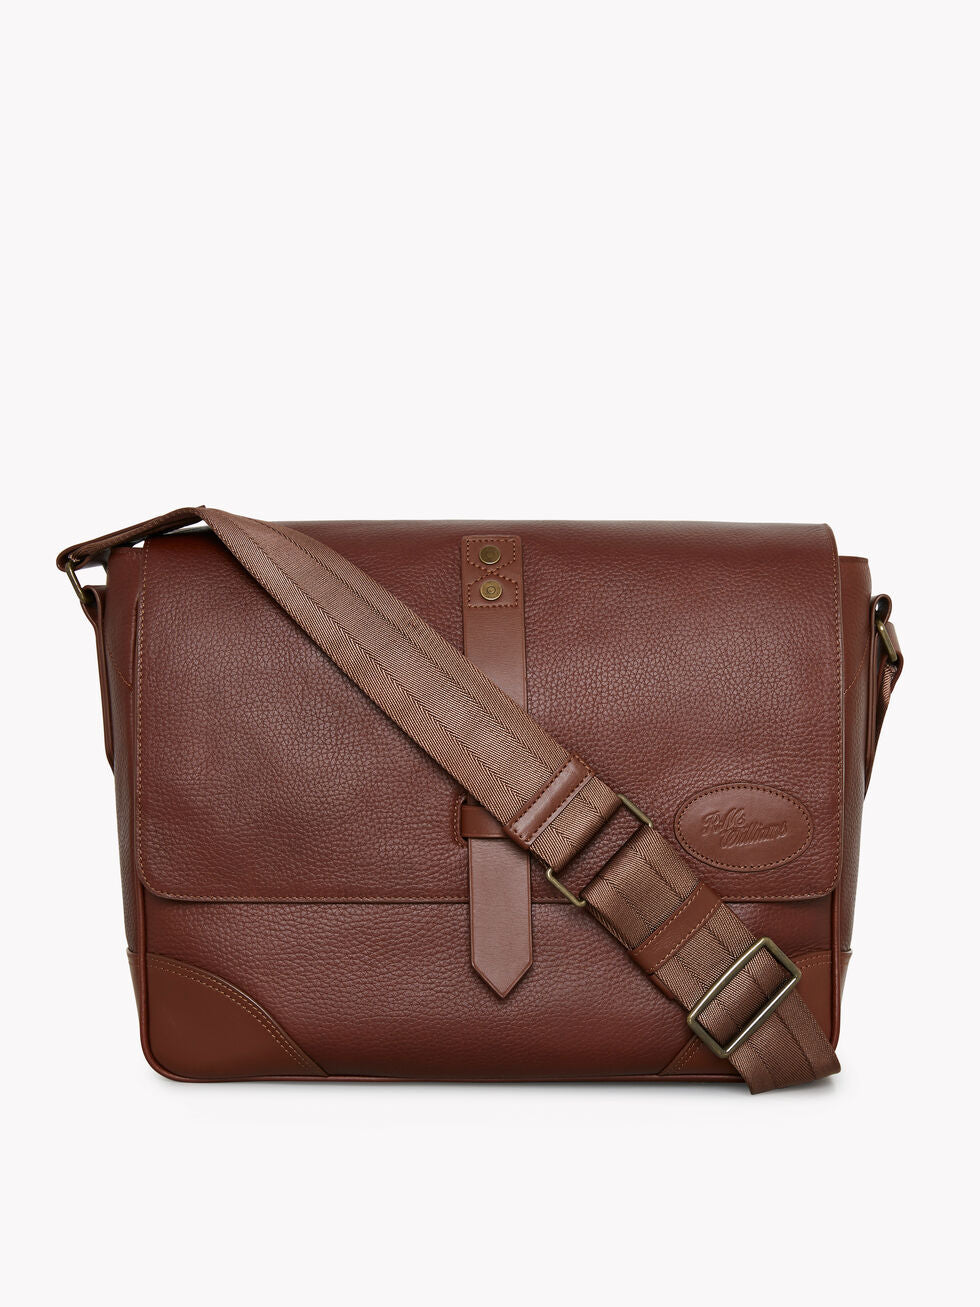 R.M.Williams Signature Messenger Bag Whiskey